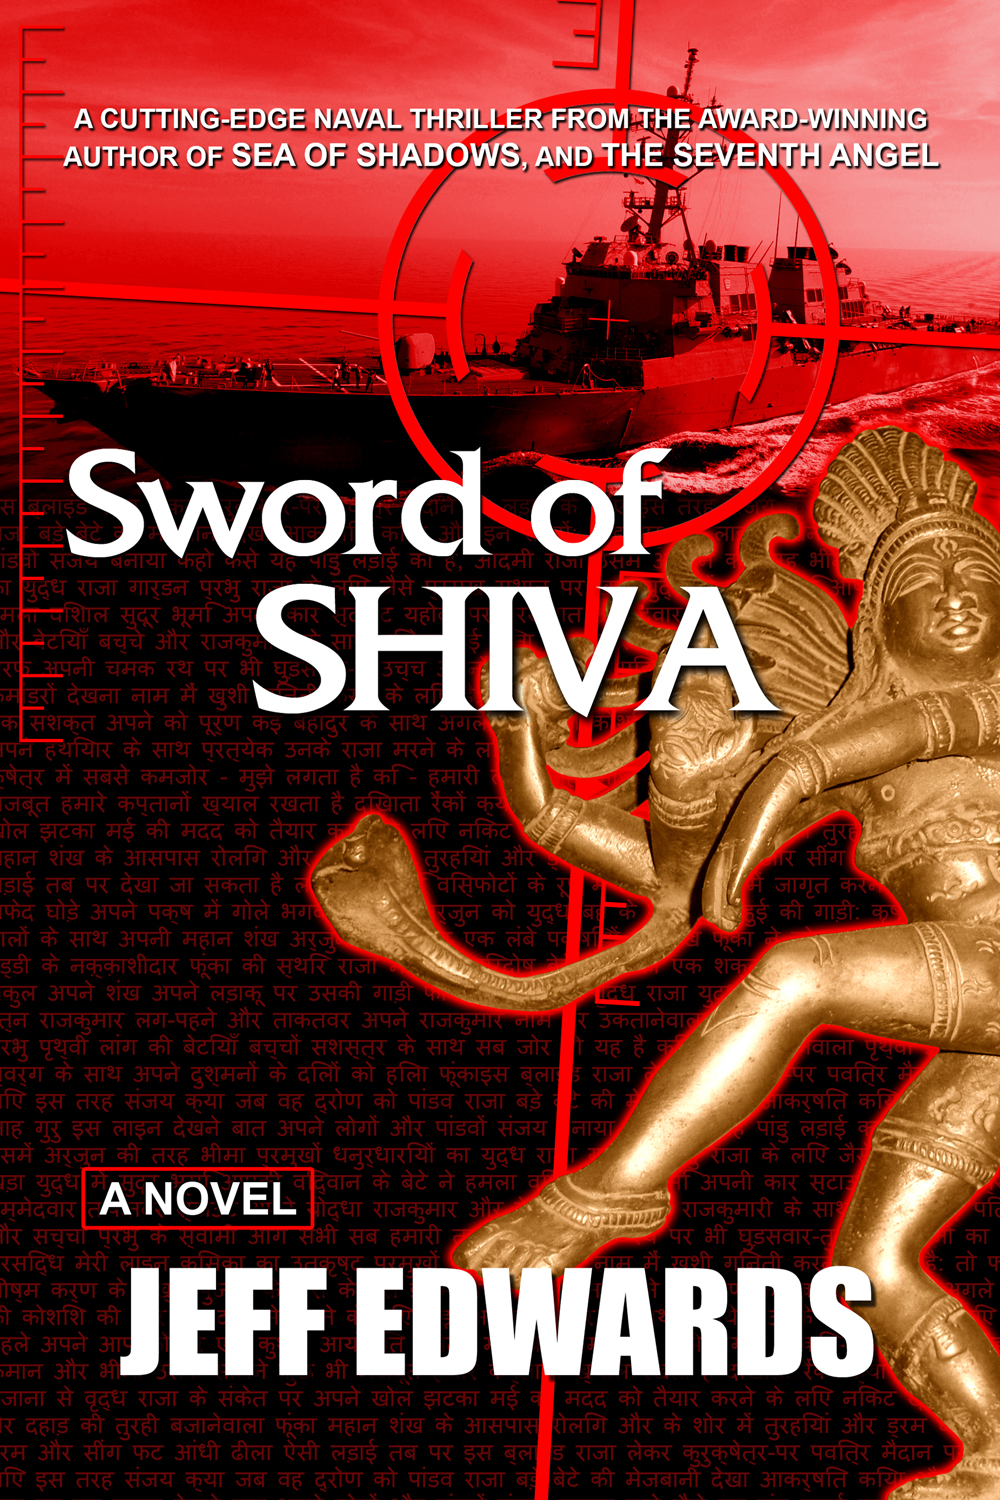 Sword of Shiva (For fans of Tom Clancy and Dale Brown)